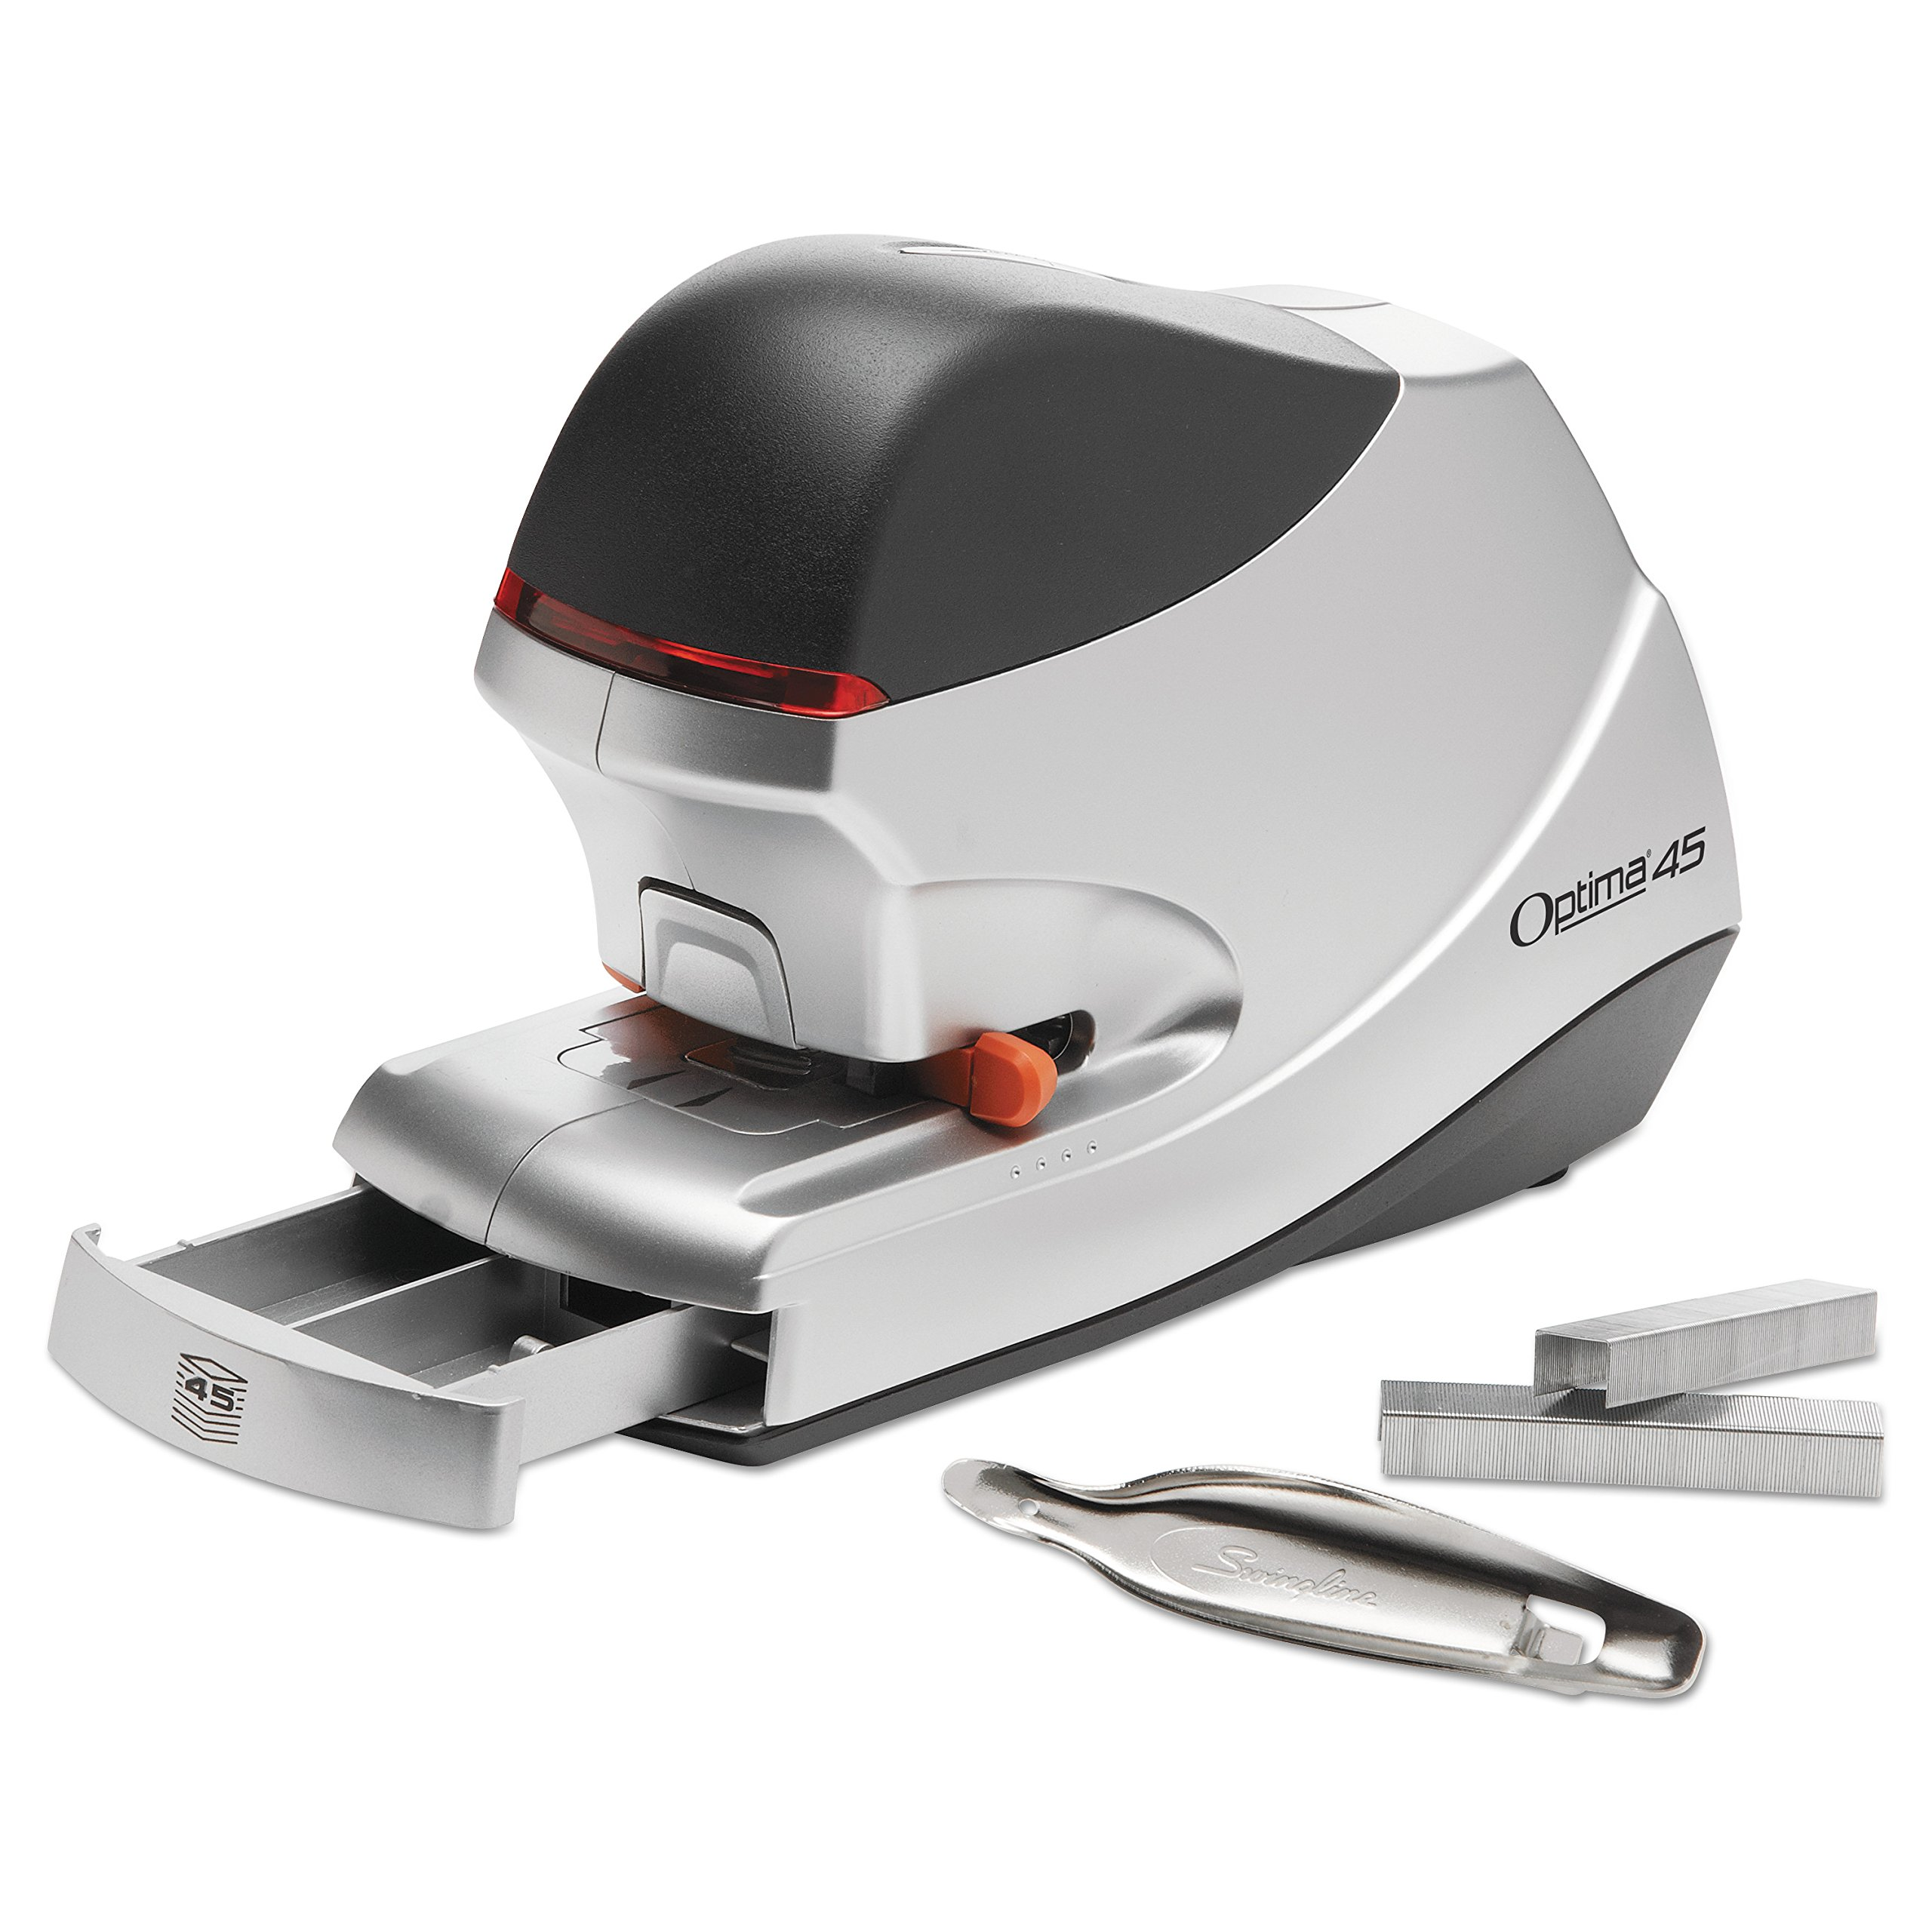 Swingline Electric Stapler Value Pack, 45 Sheet Capacity, Optima 45, includes High Capacity Staples and Staple Remover (48209)